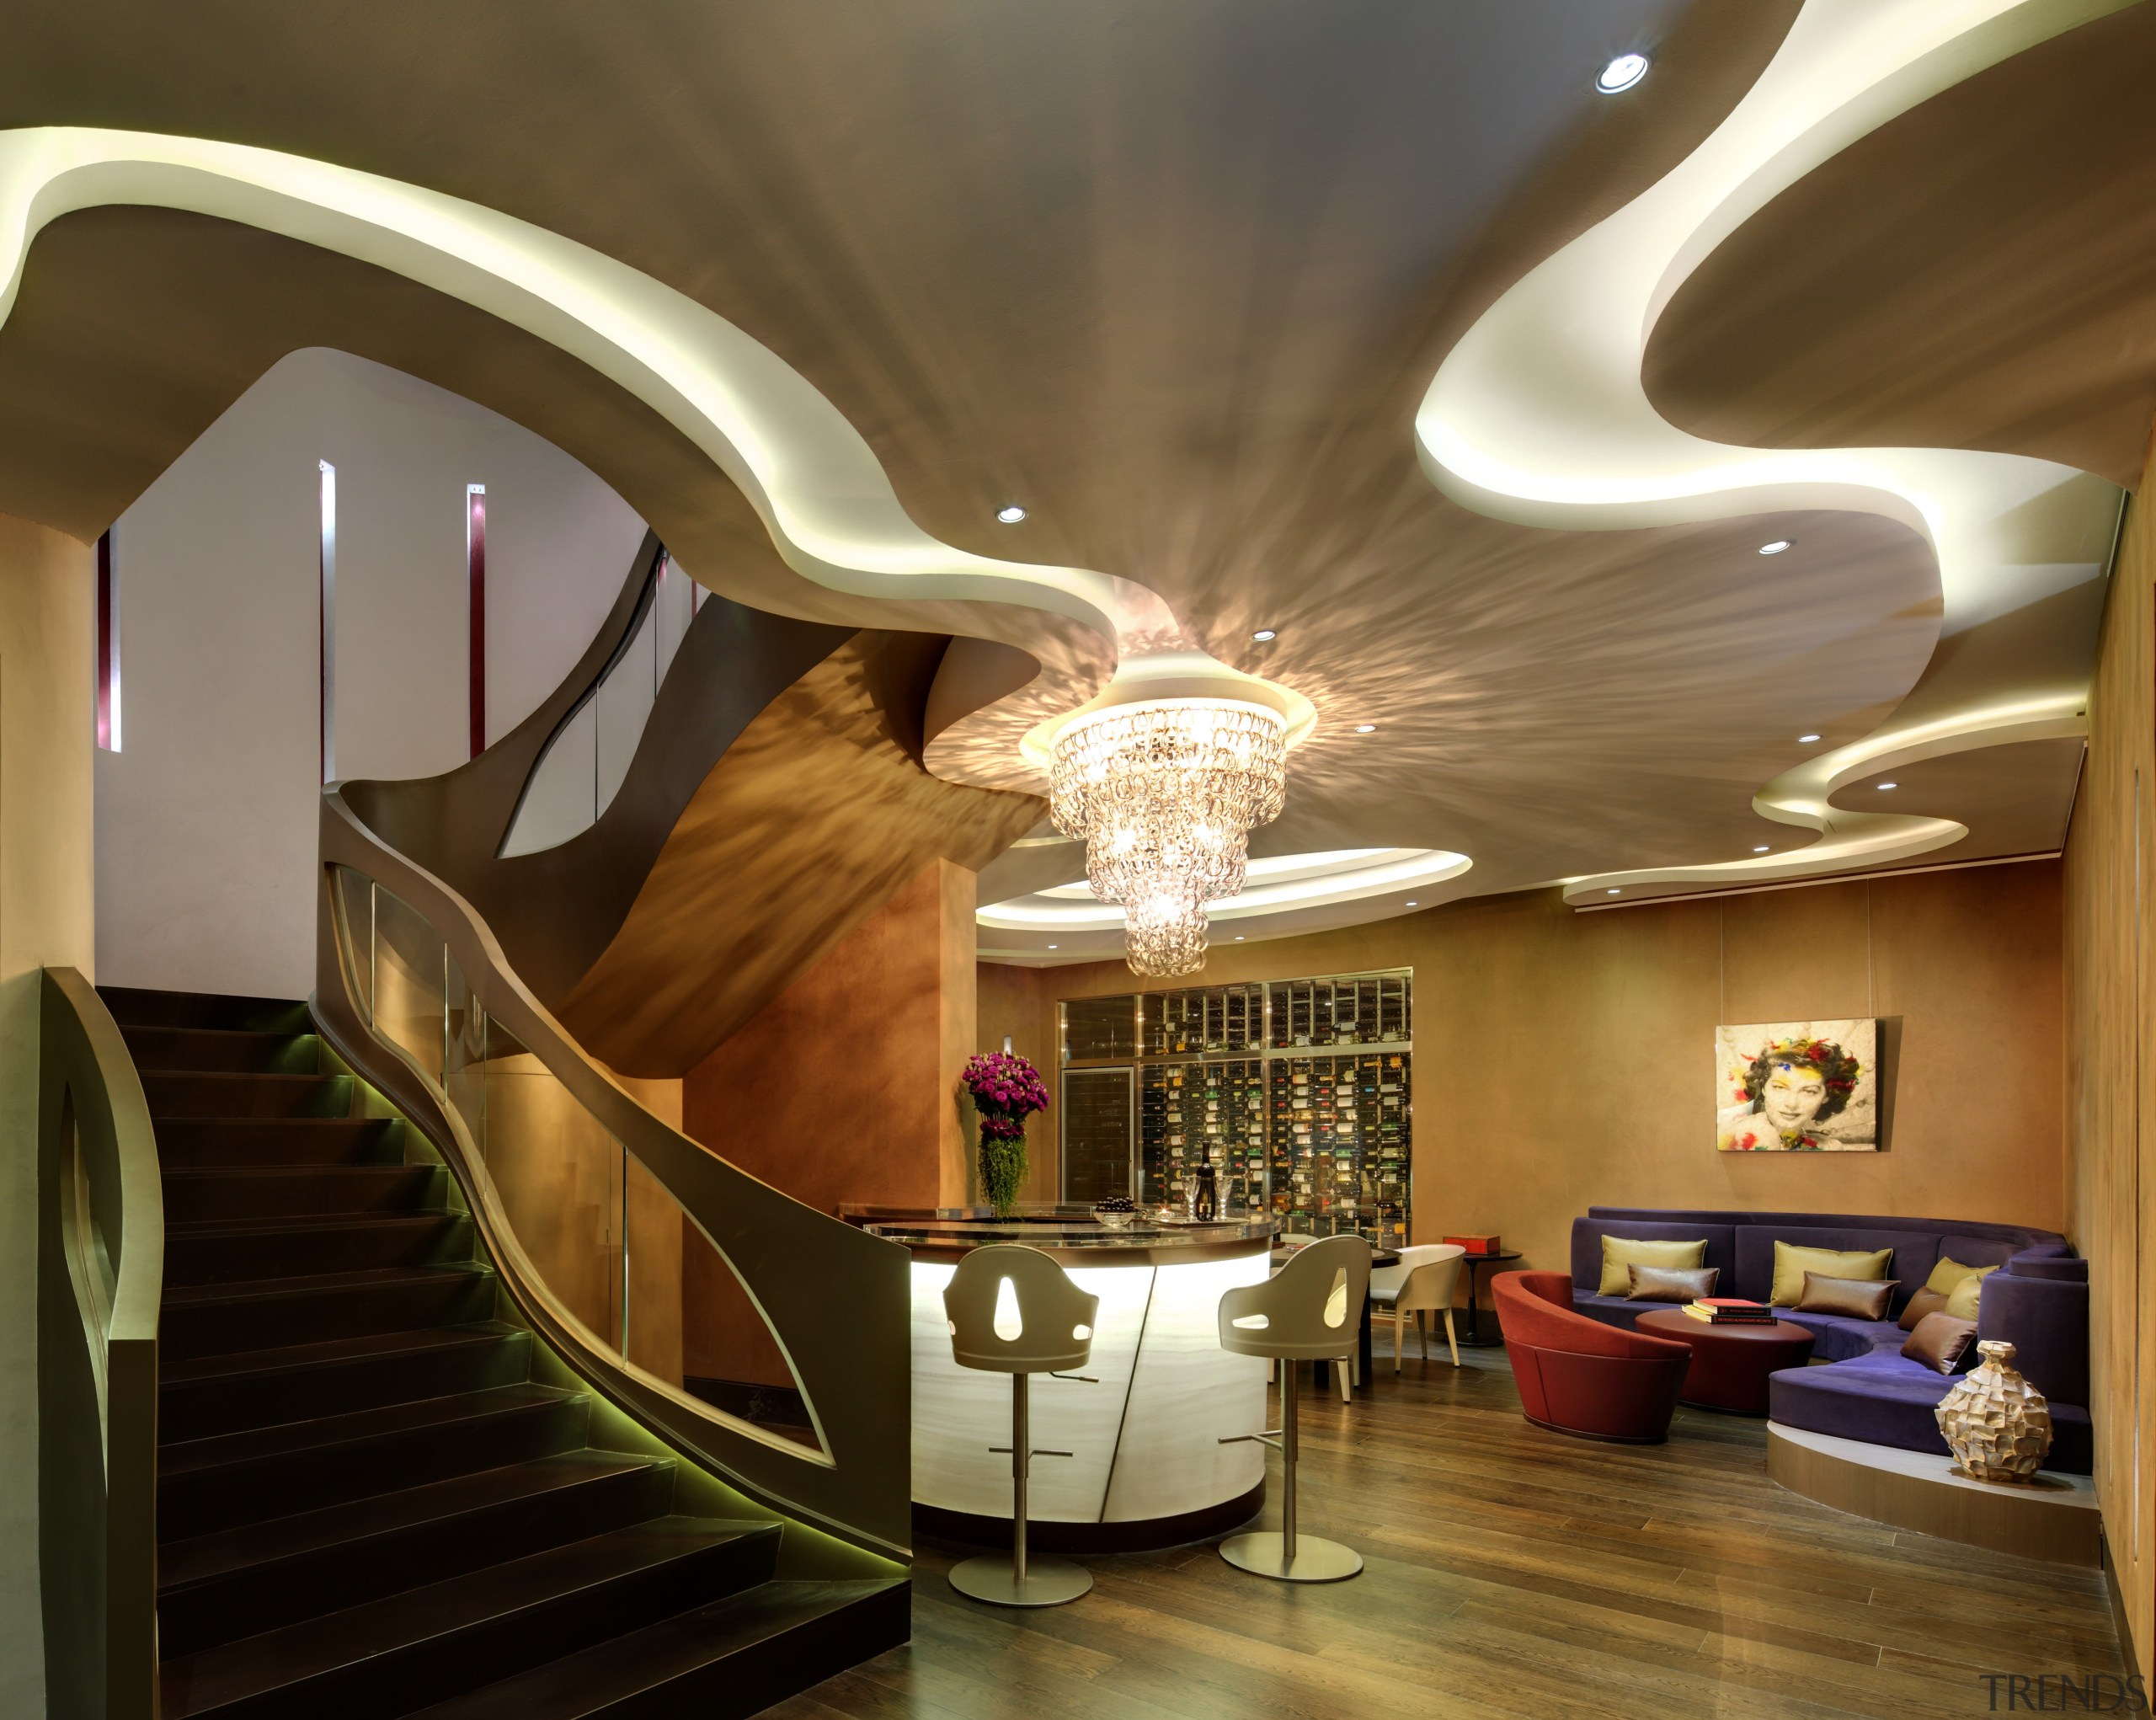 Never mind the arresting ceiling and staircase, even architecture, ceiling, home, interior design, lighting, lobby, room, stairs, brown